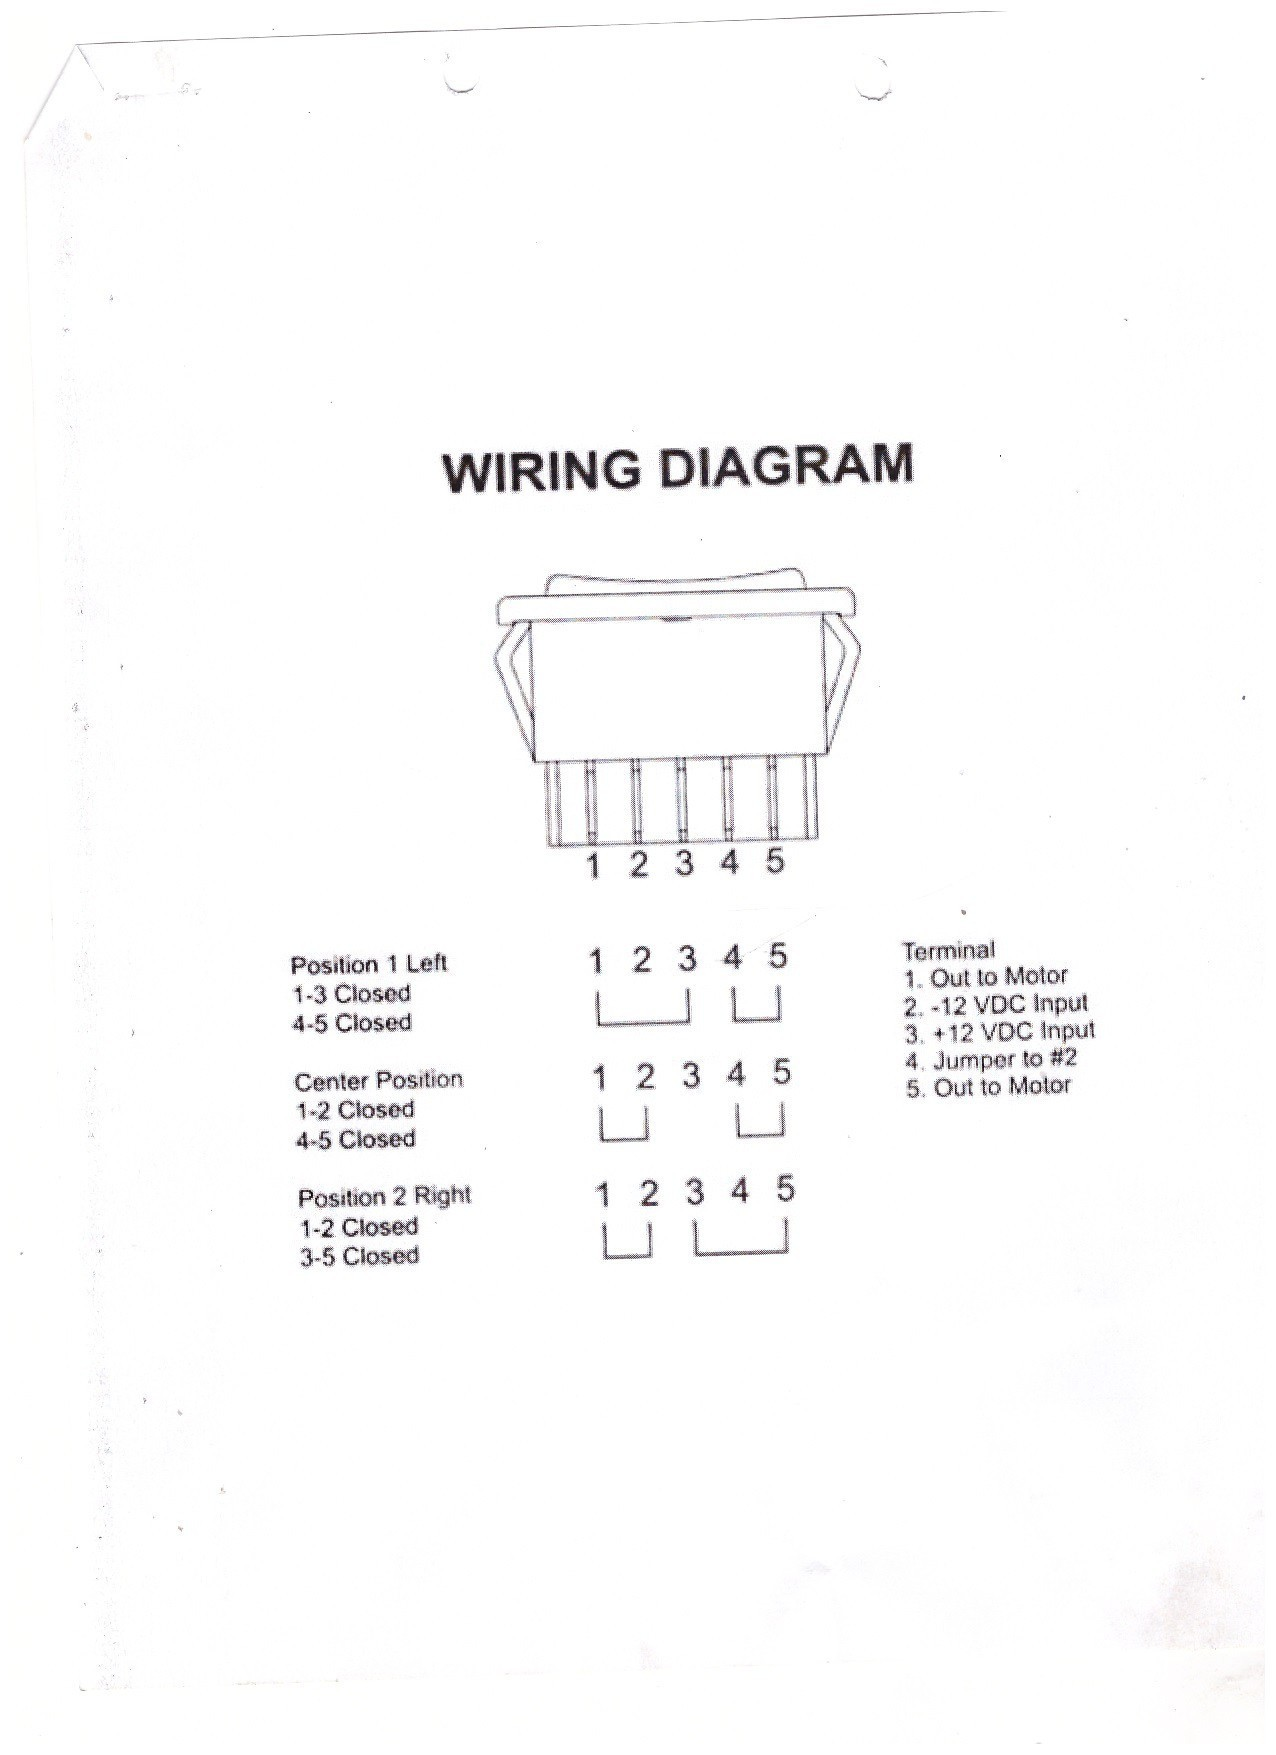 Wiring Diagram For Power Window Switches Headlight Dimmer Switch Universal Amazing Simple Of